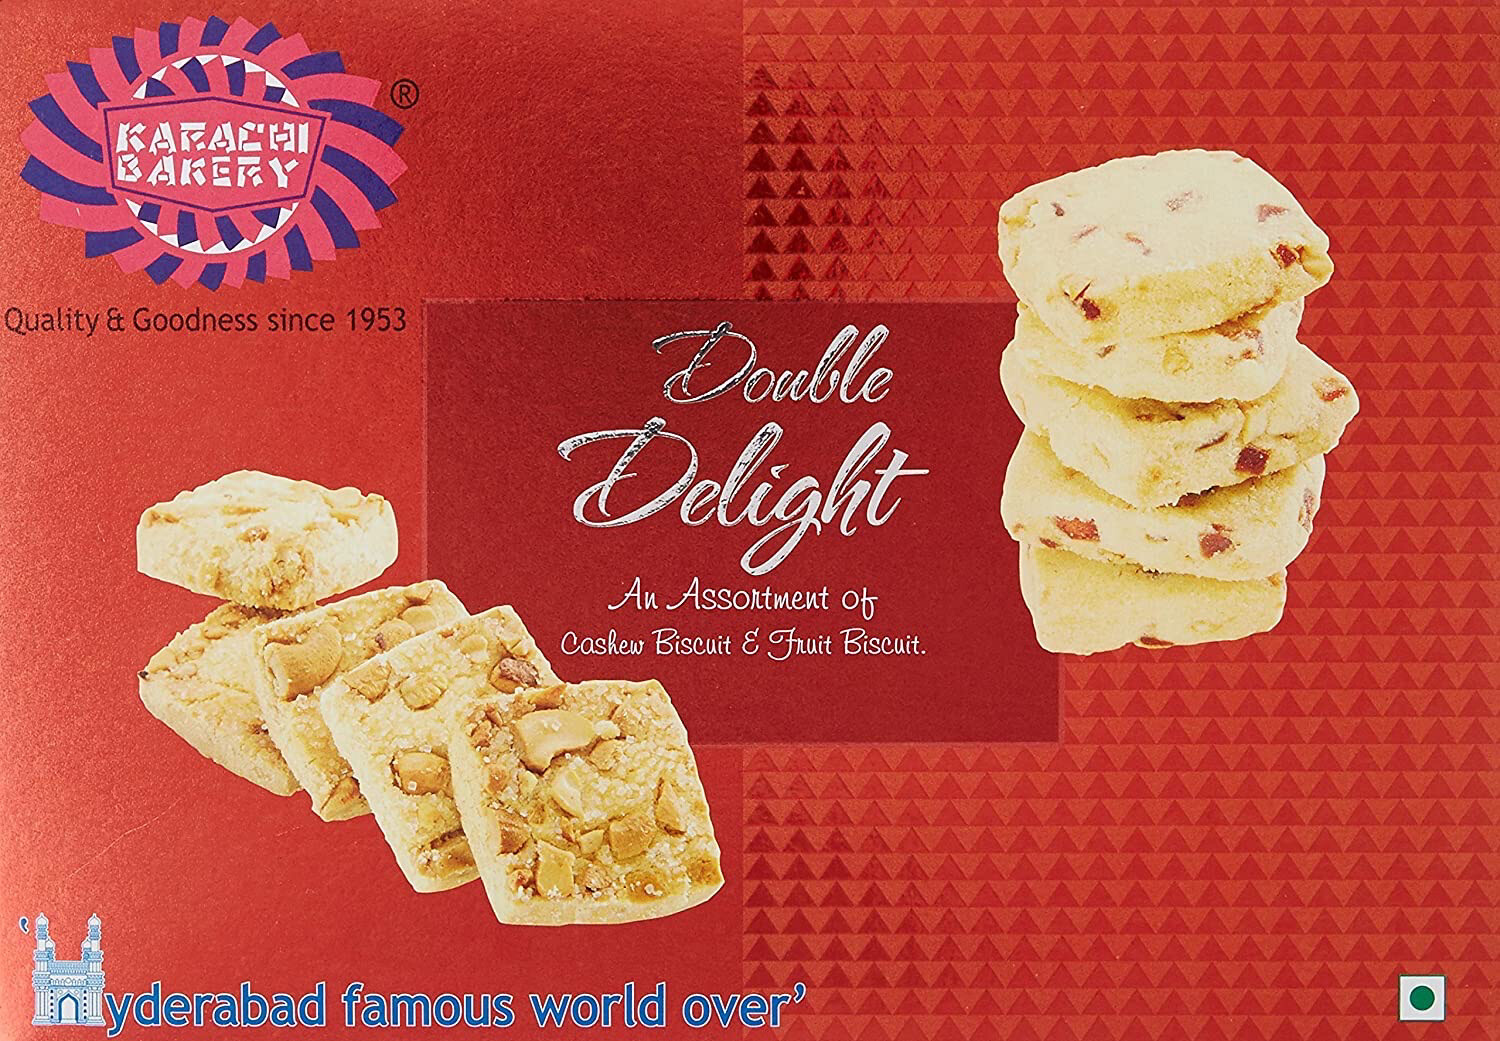 KARACHI BAKERY RED DOUBLE DELIGHT BISCUITS 400GM